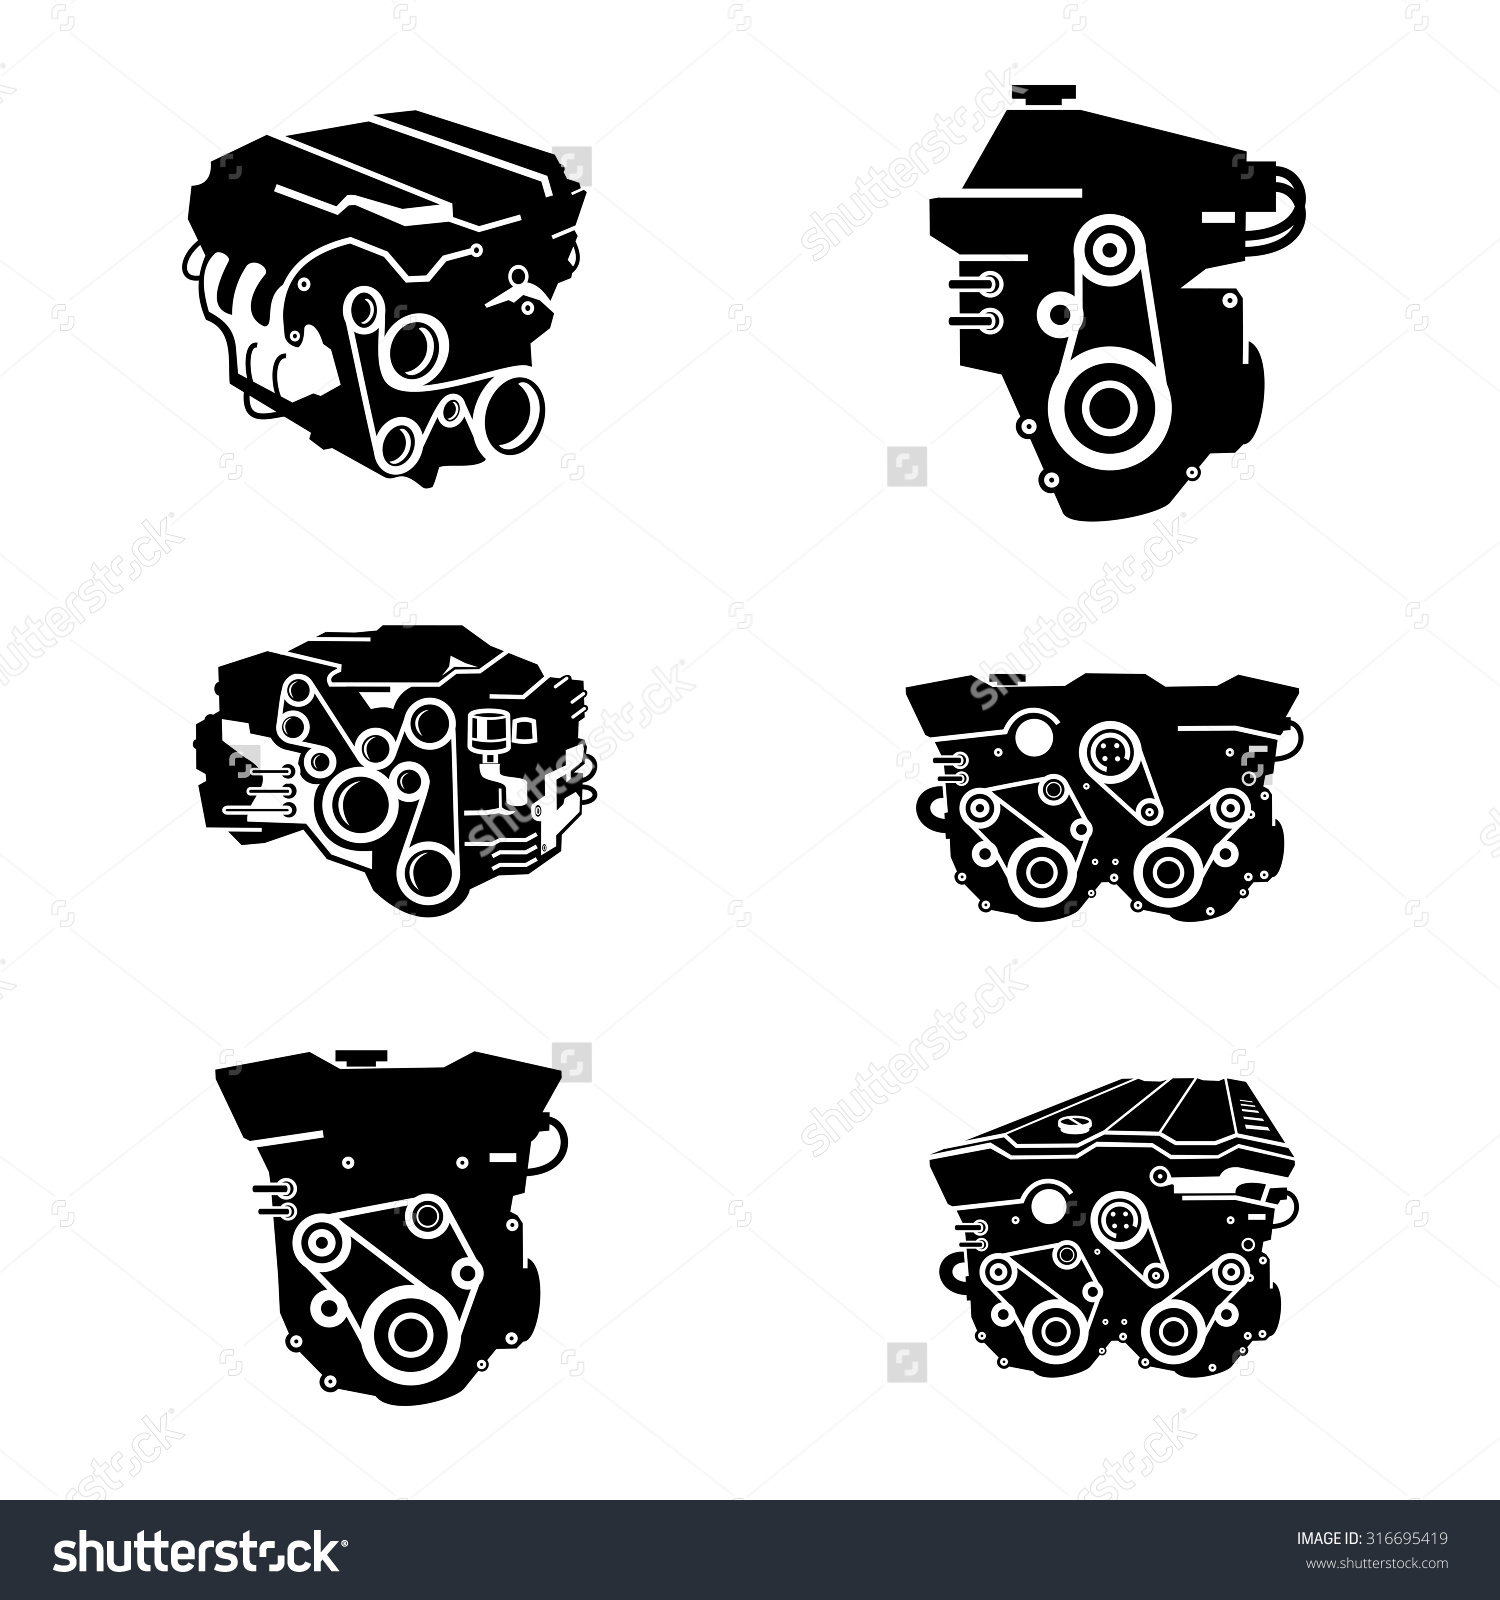 Block clipart motor silhouette. Car engine clipartfox icons